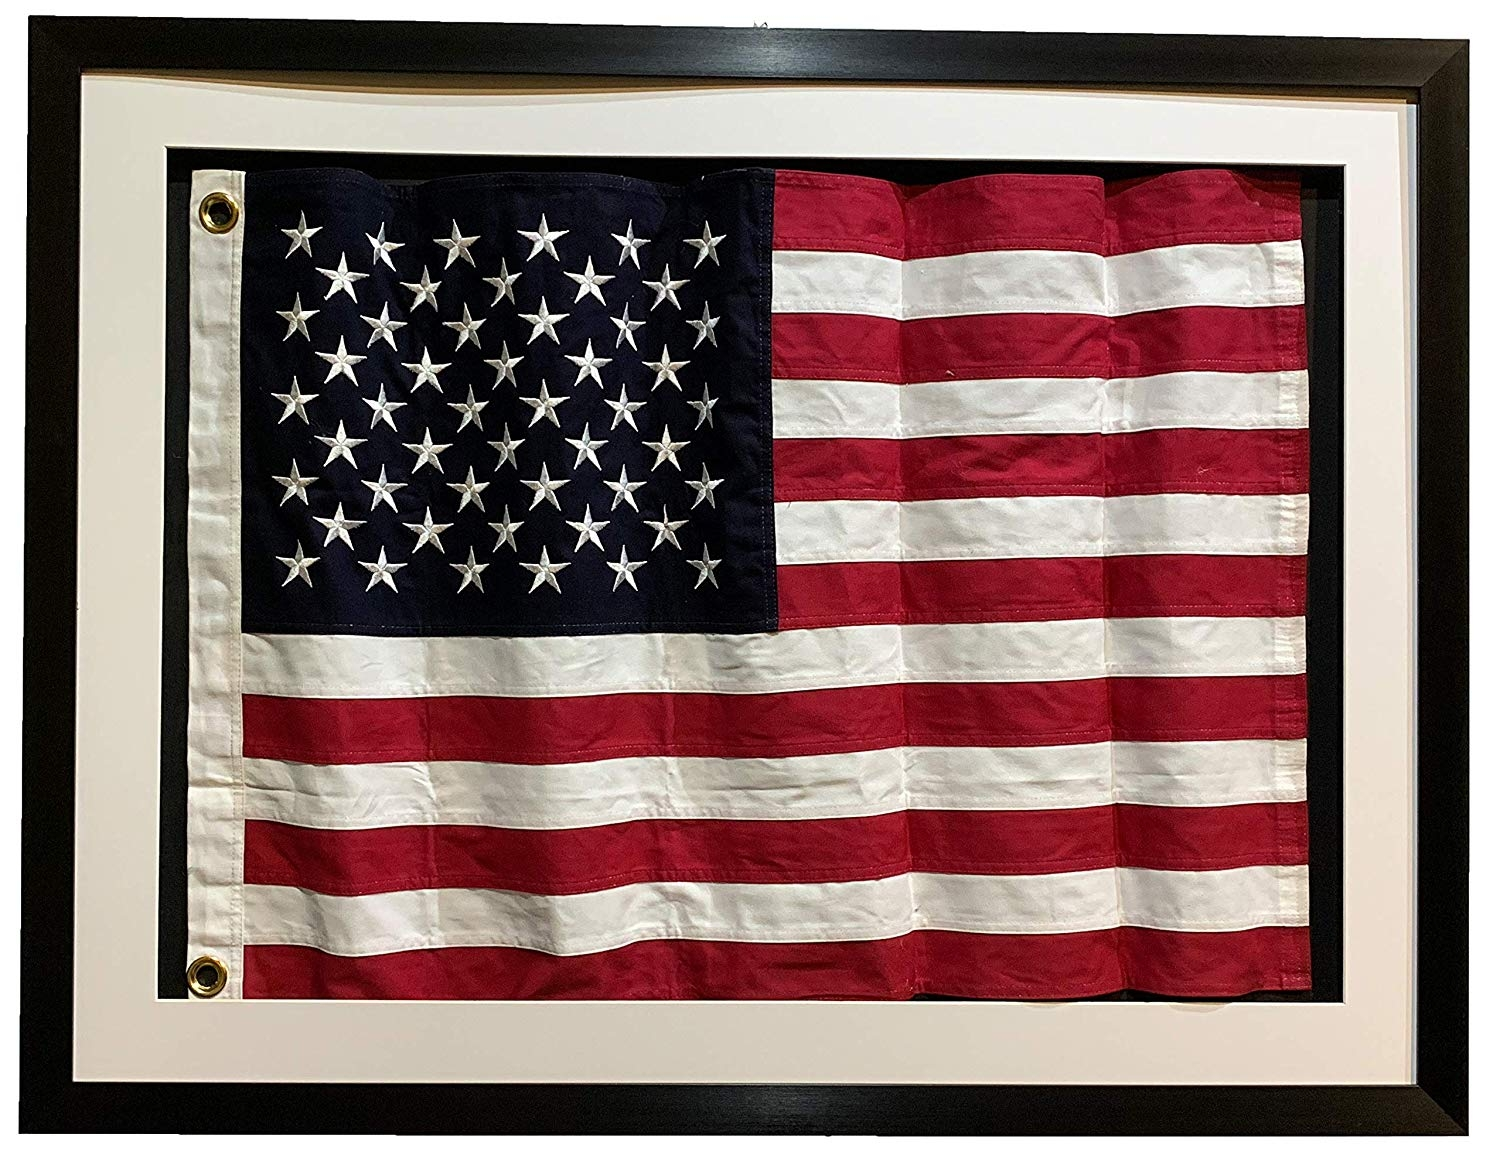 "Framed Size: 42X32"" Framed under real glass,waved flag in 3d shadow box"